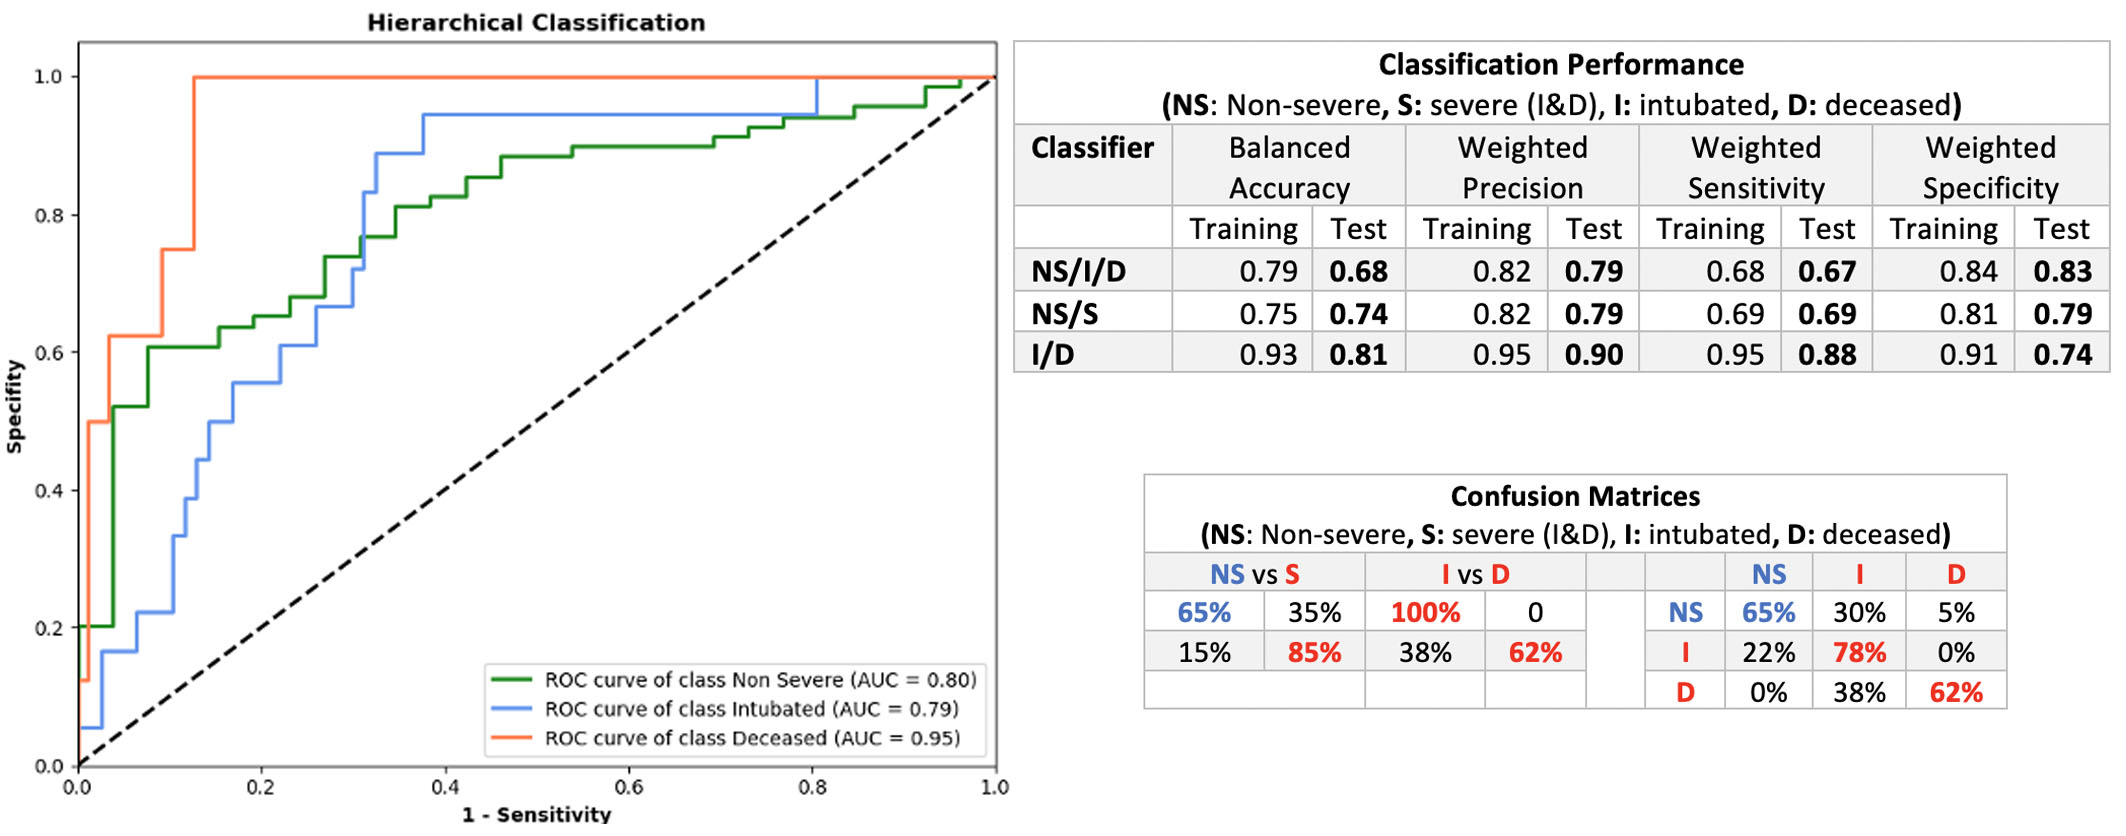 Classification performance of dual & aggregated classifiers with respect to the non-severe vs severe case, the intubated vs deceased case and the three classes. Sensitivity and confusion tables are presented with respect to the different classification problems.